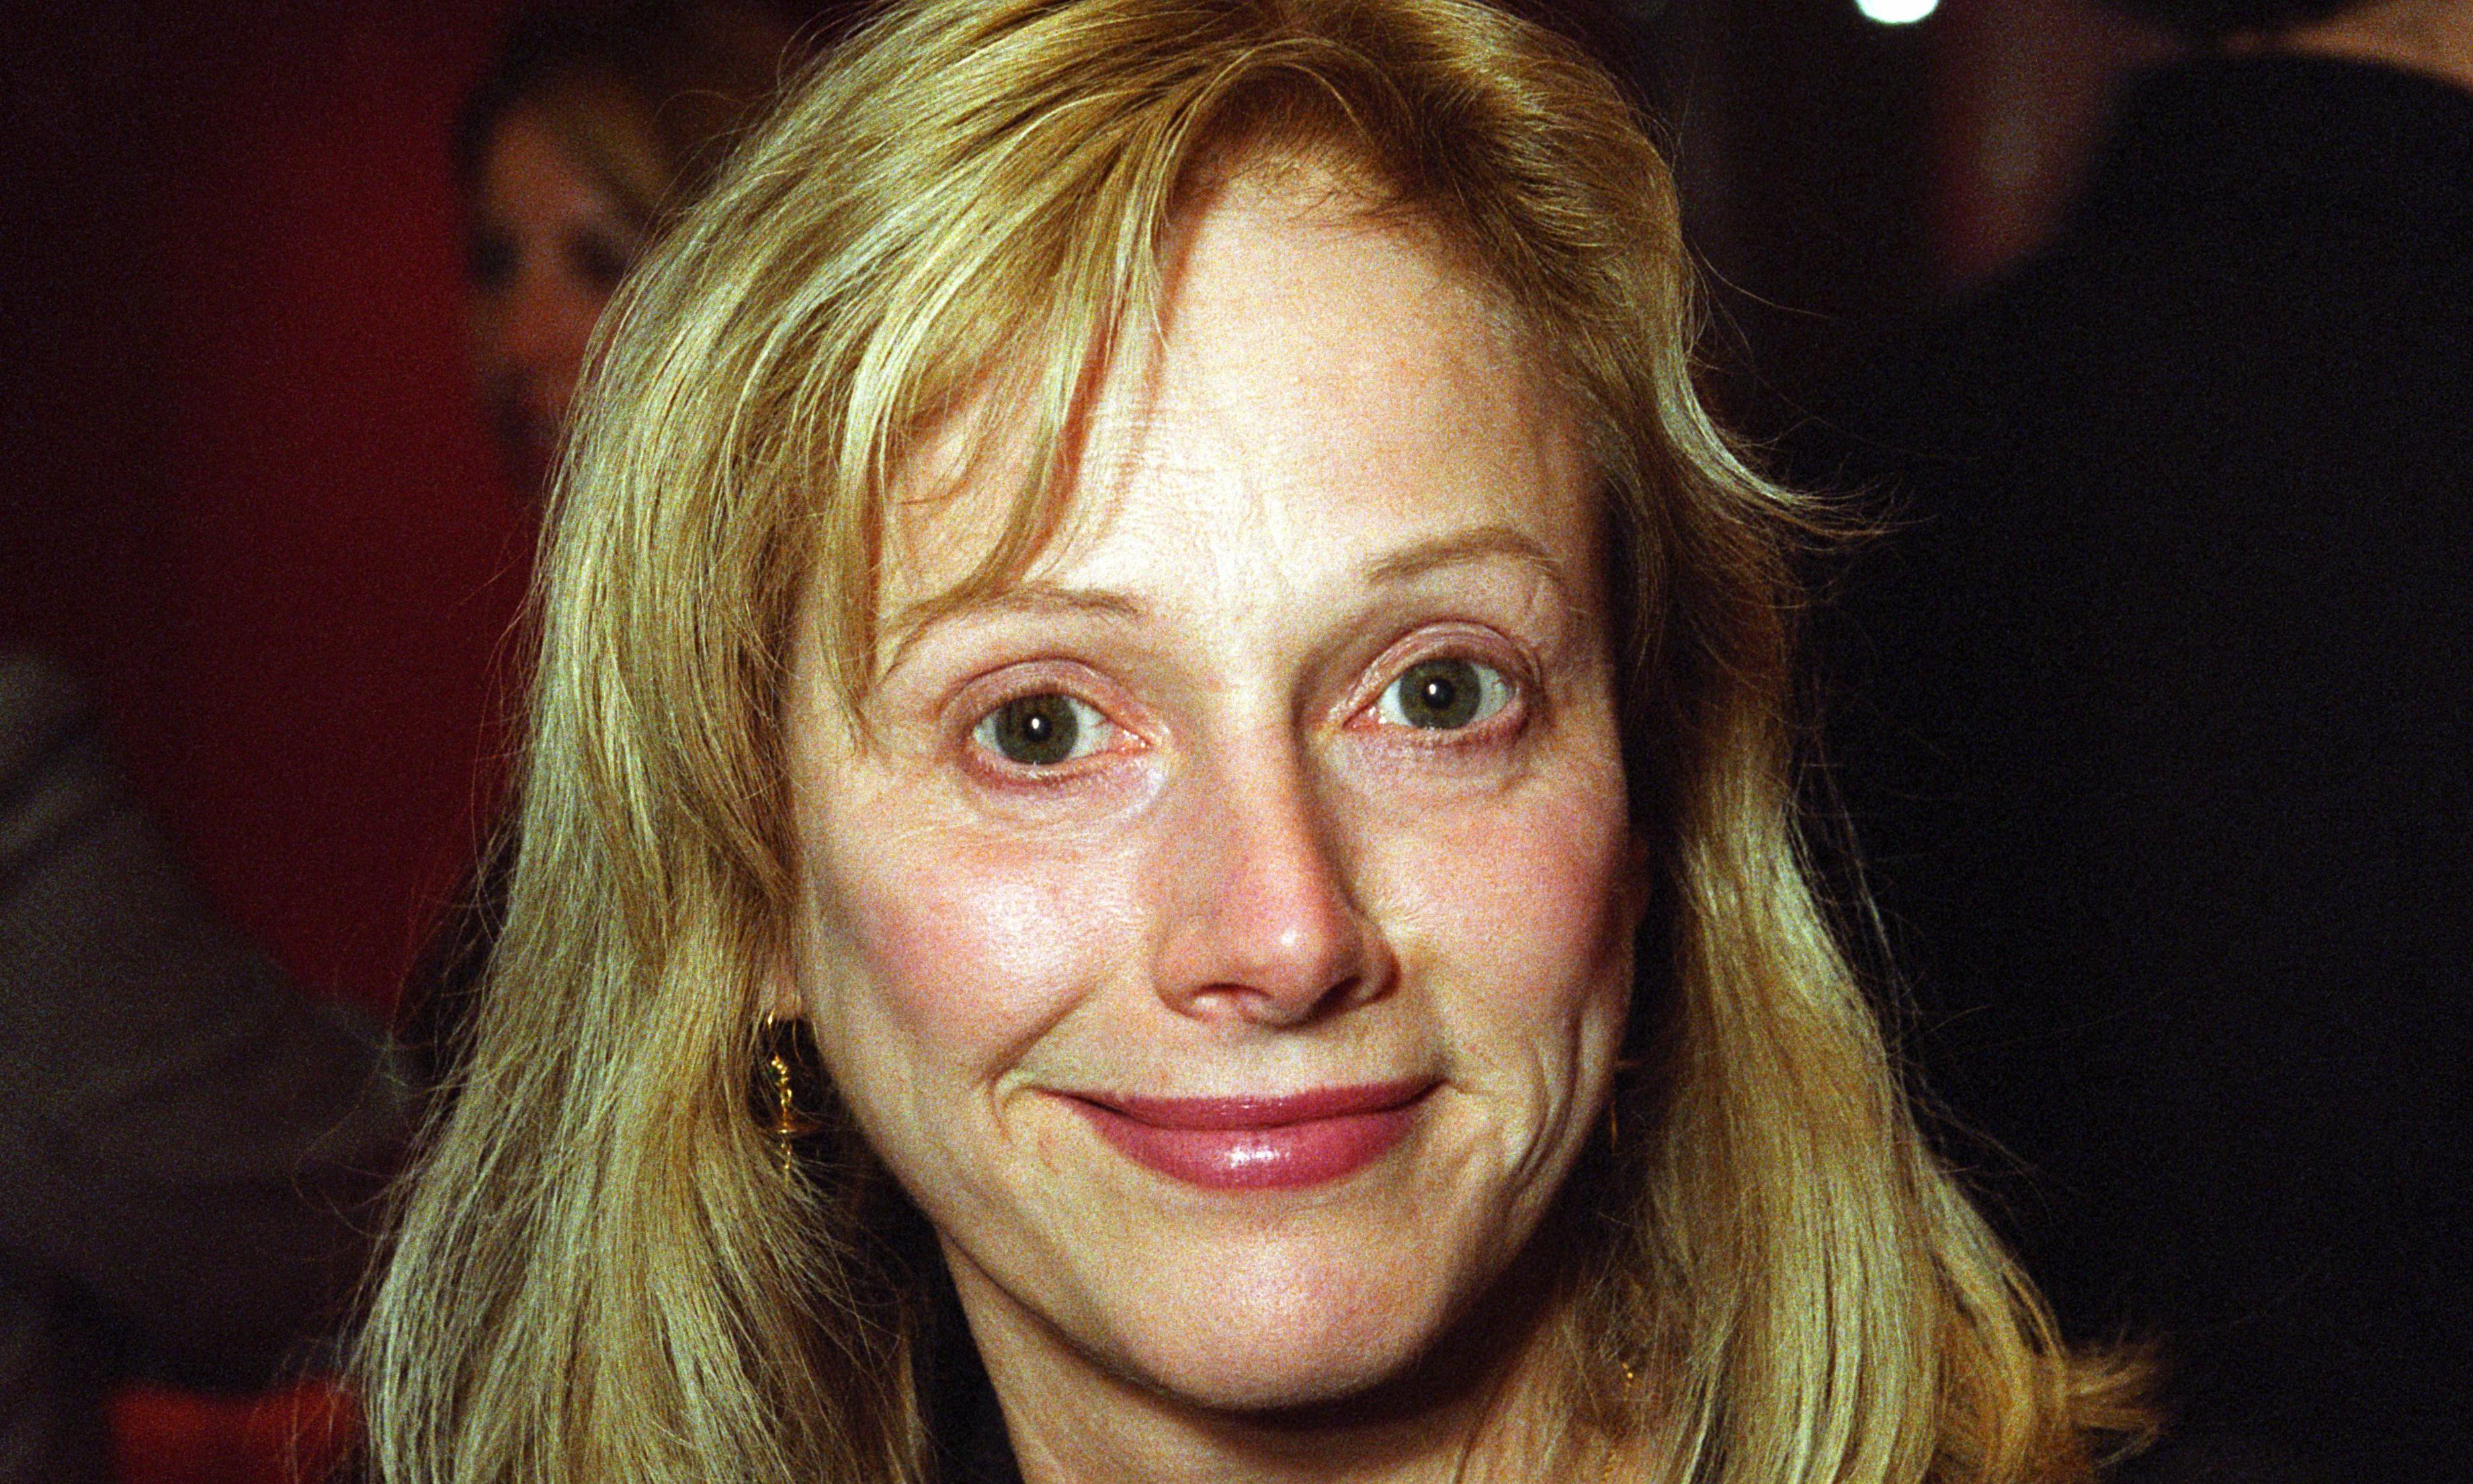 Sondra Locke, actor and former partner of Clint Eastwood, dies at 74